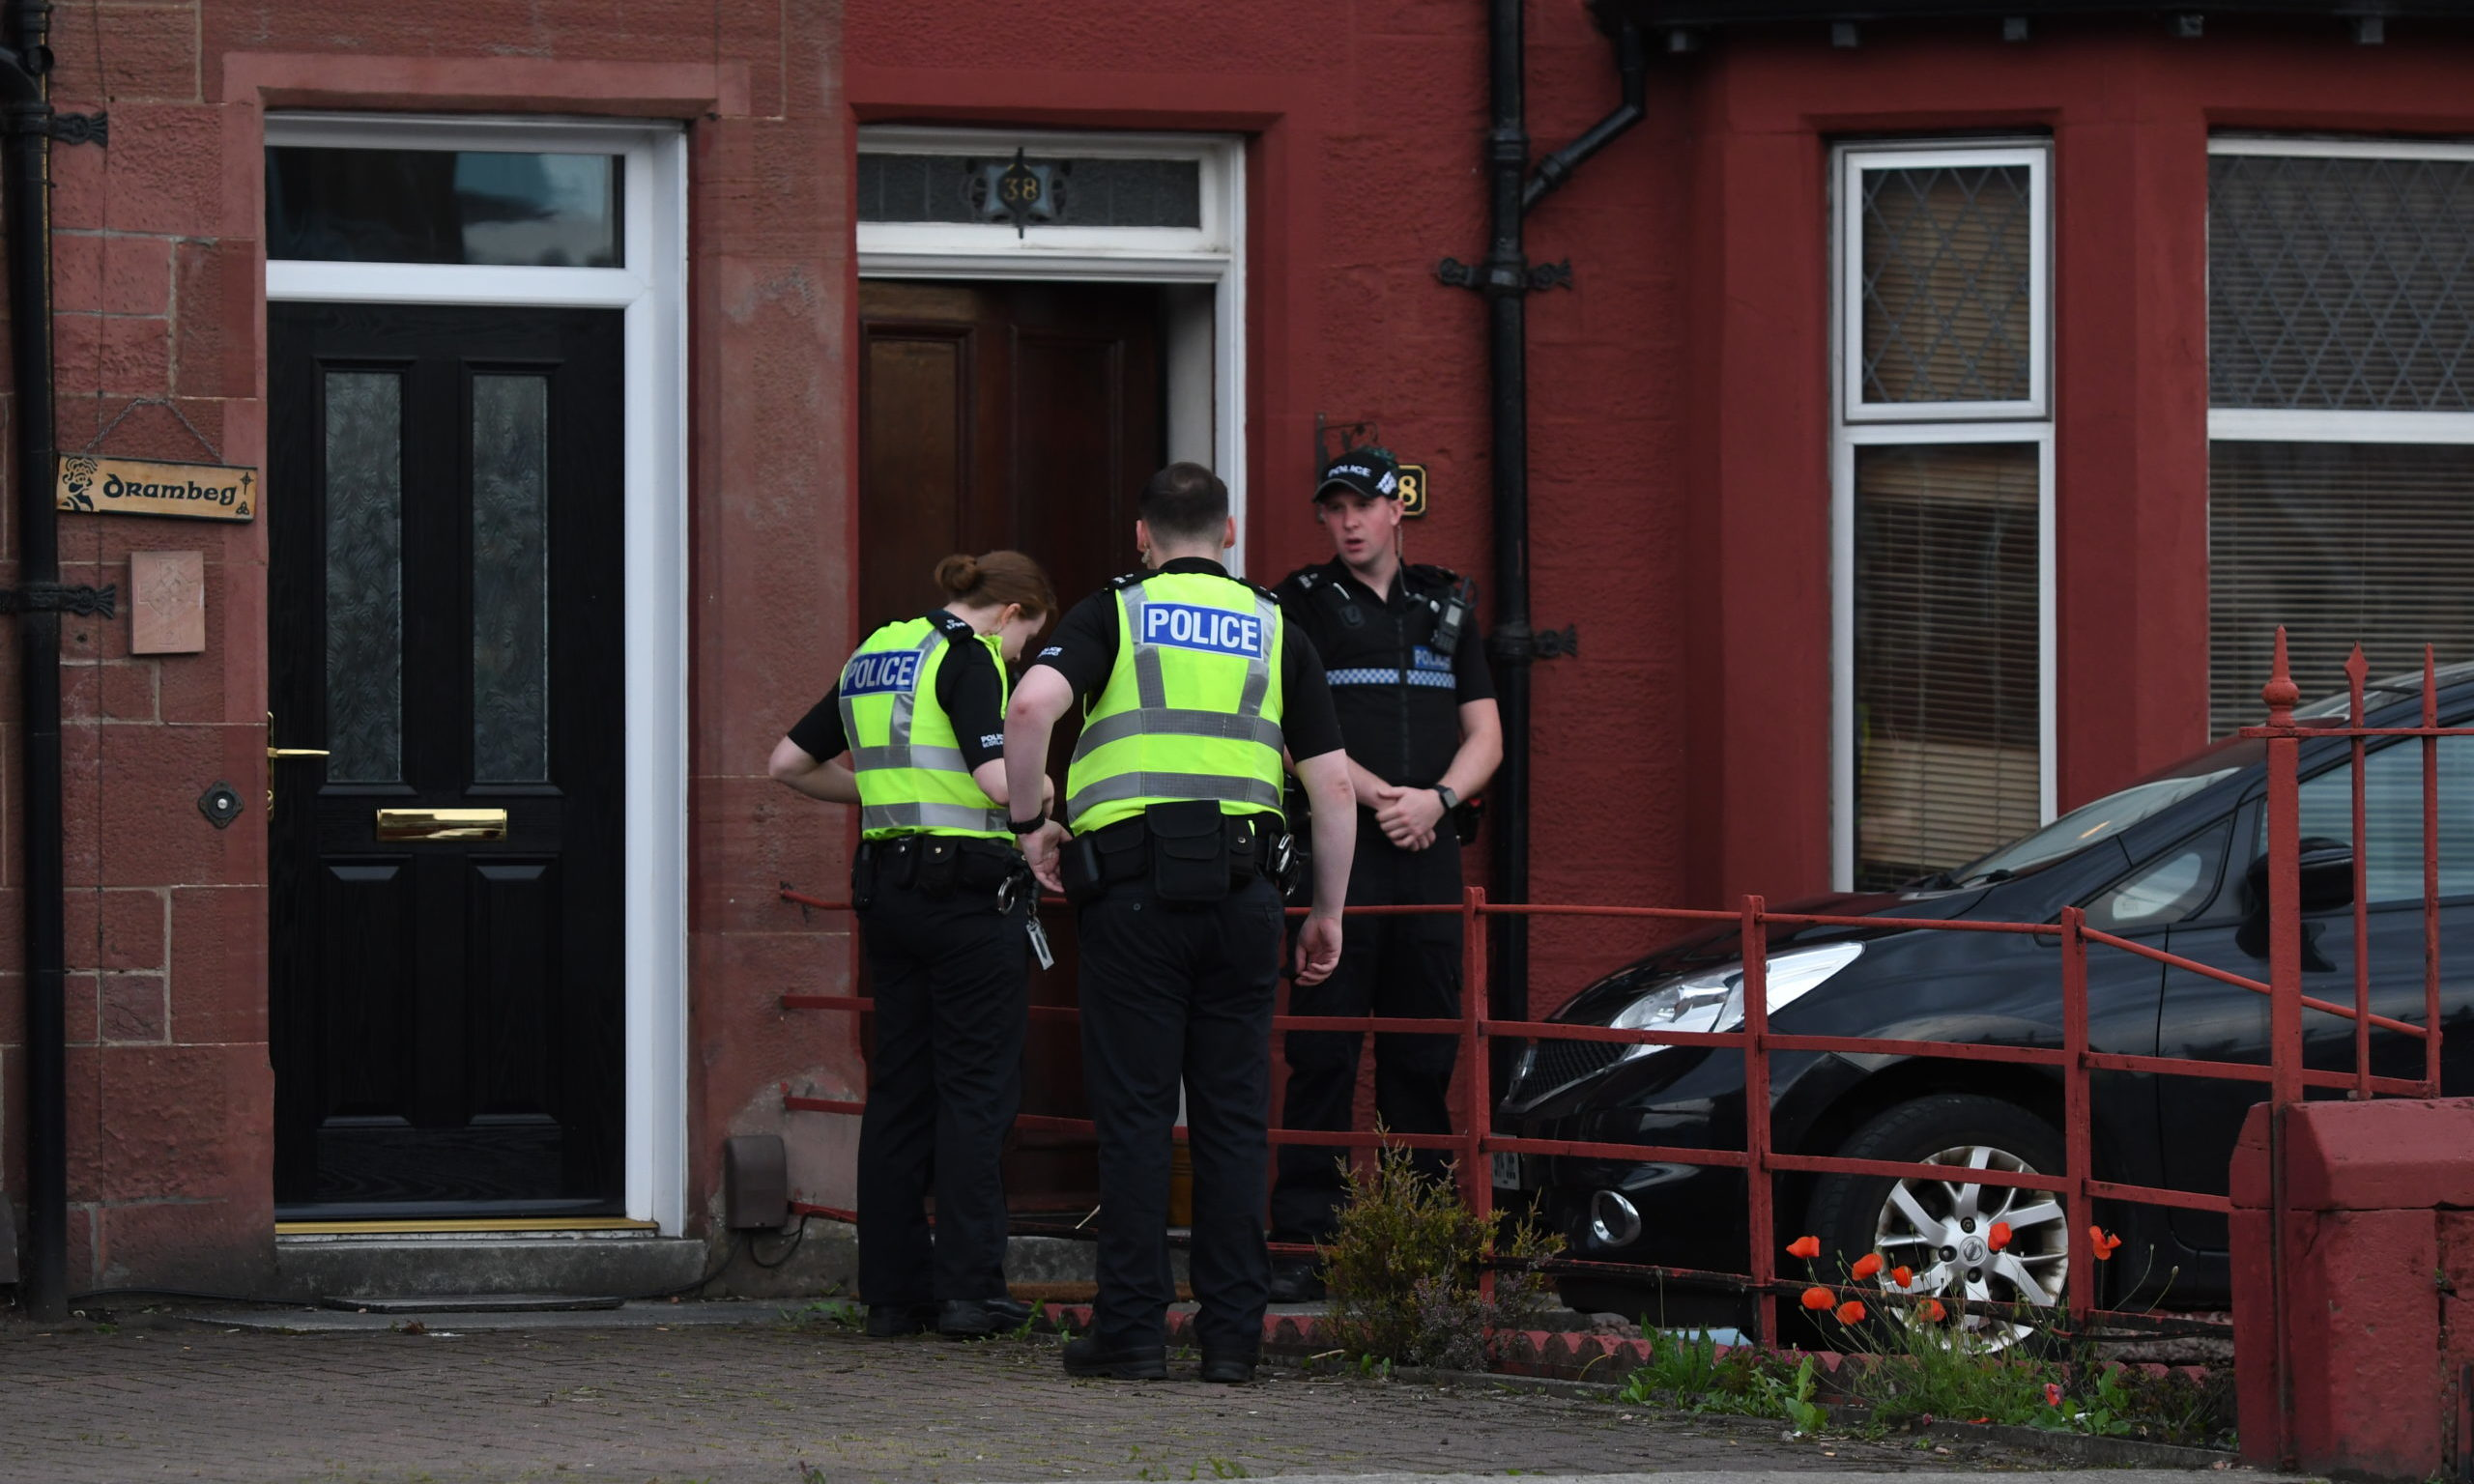 Officers remained at the property for over an hour.